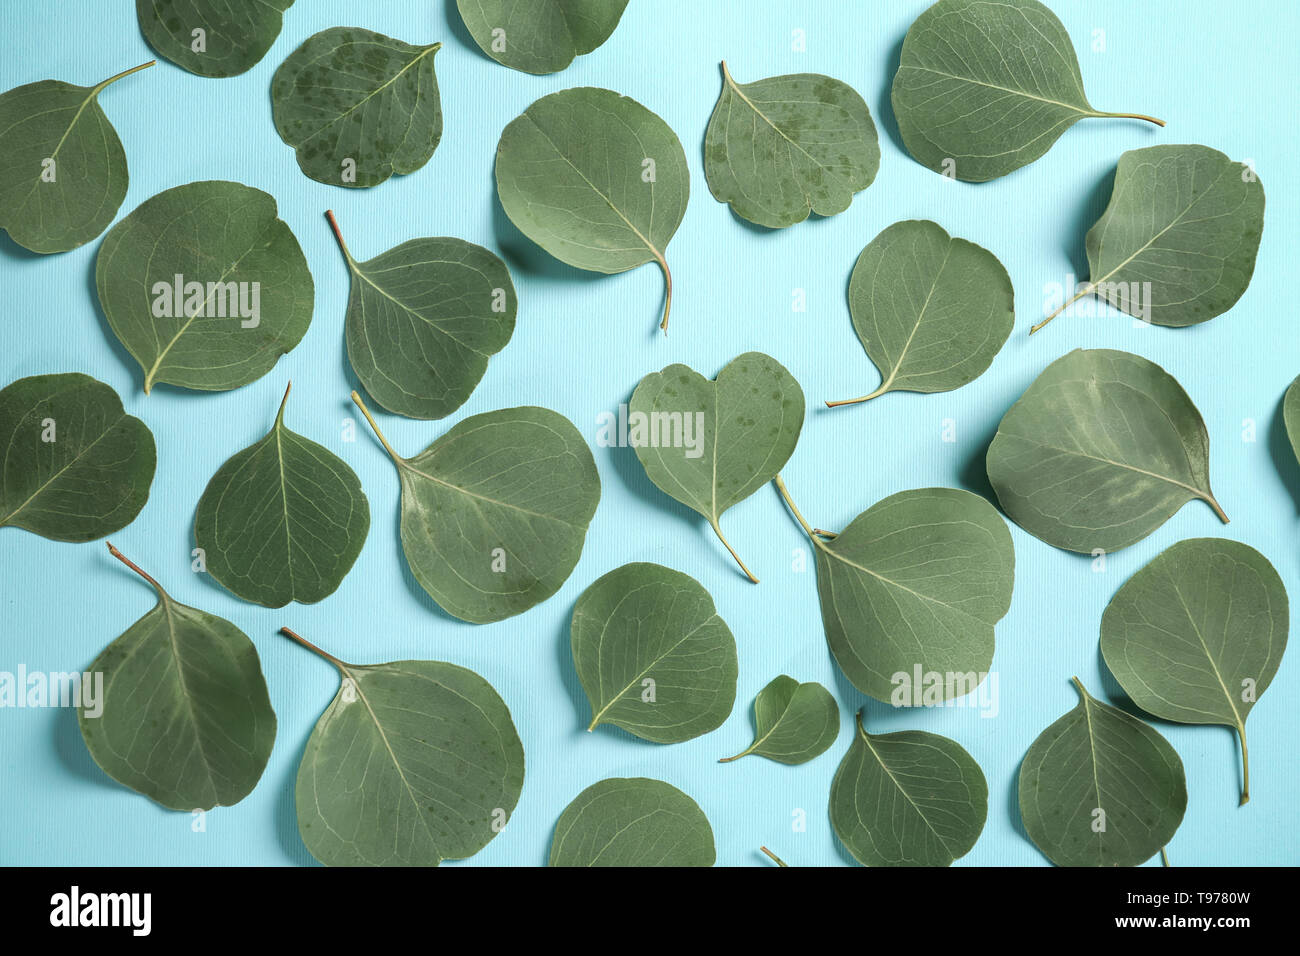 Green eucalyptus leaves on color background - Stock Image